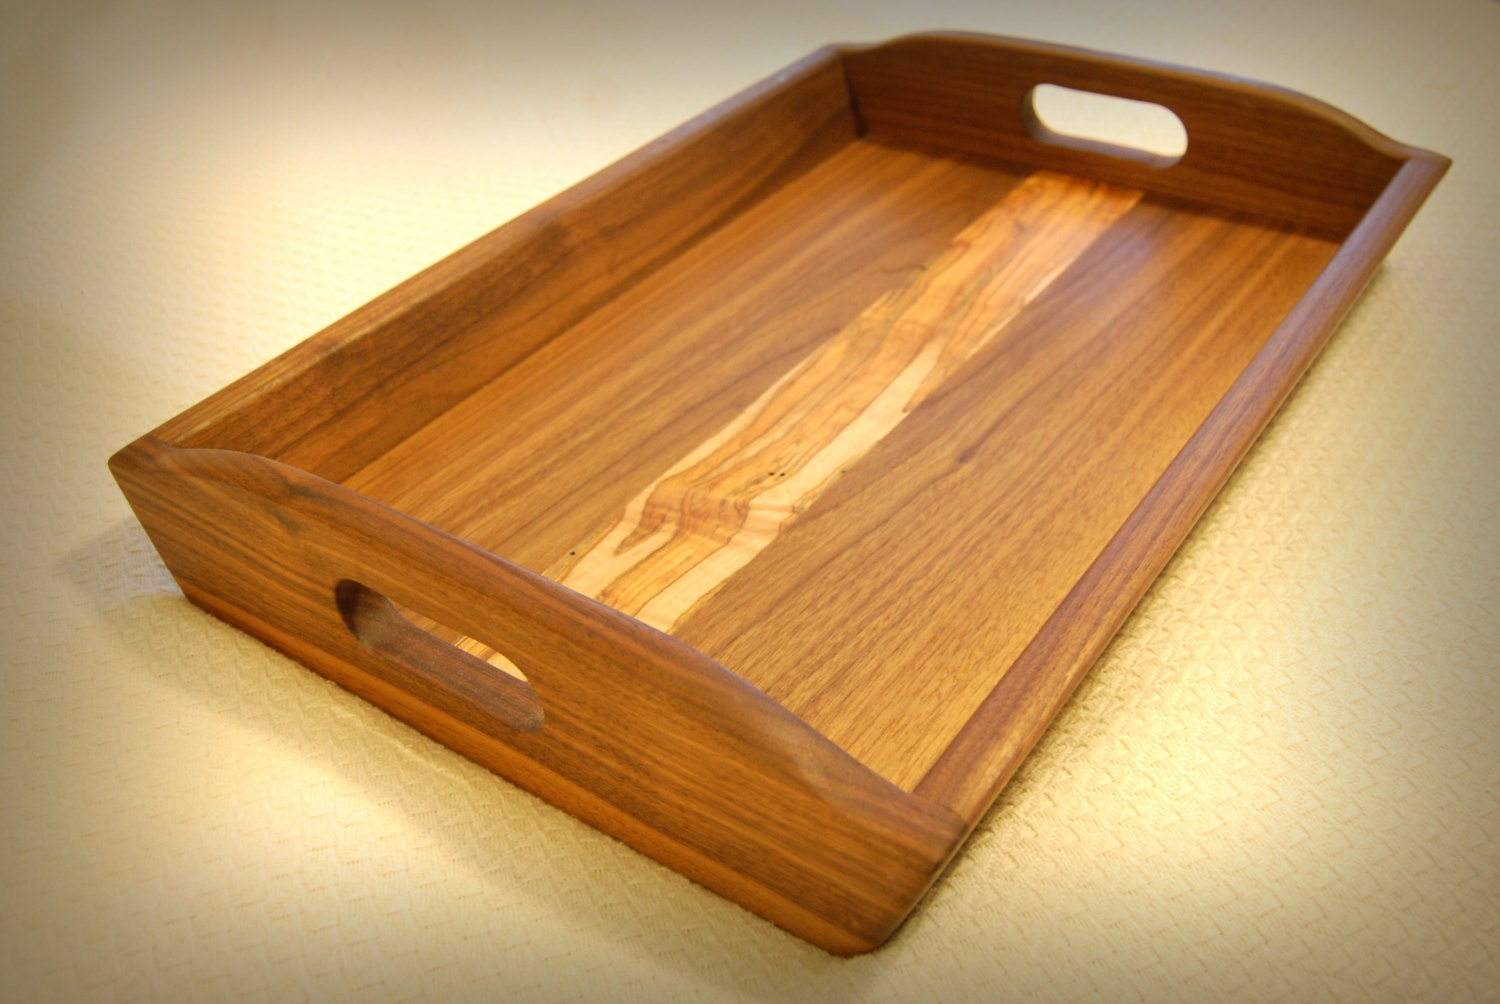 Handmade Wood Serving Tray Ottoman Walnut And Maple